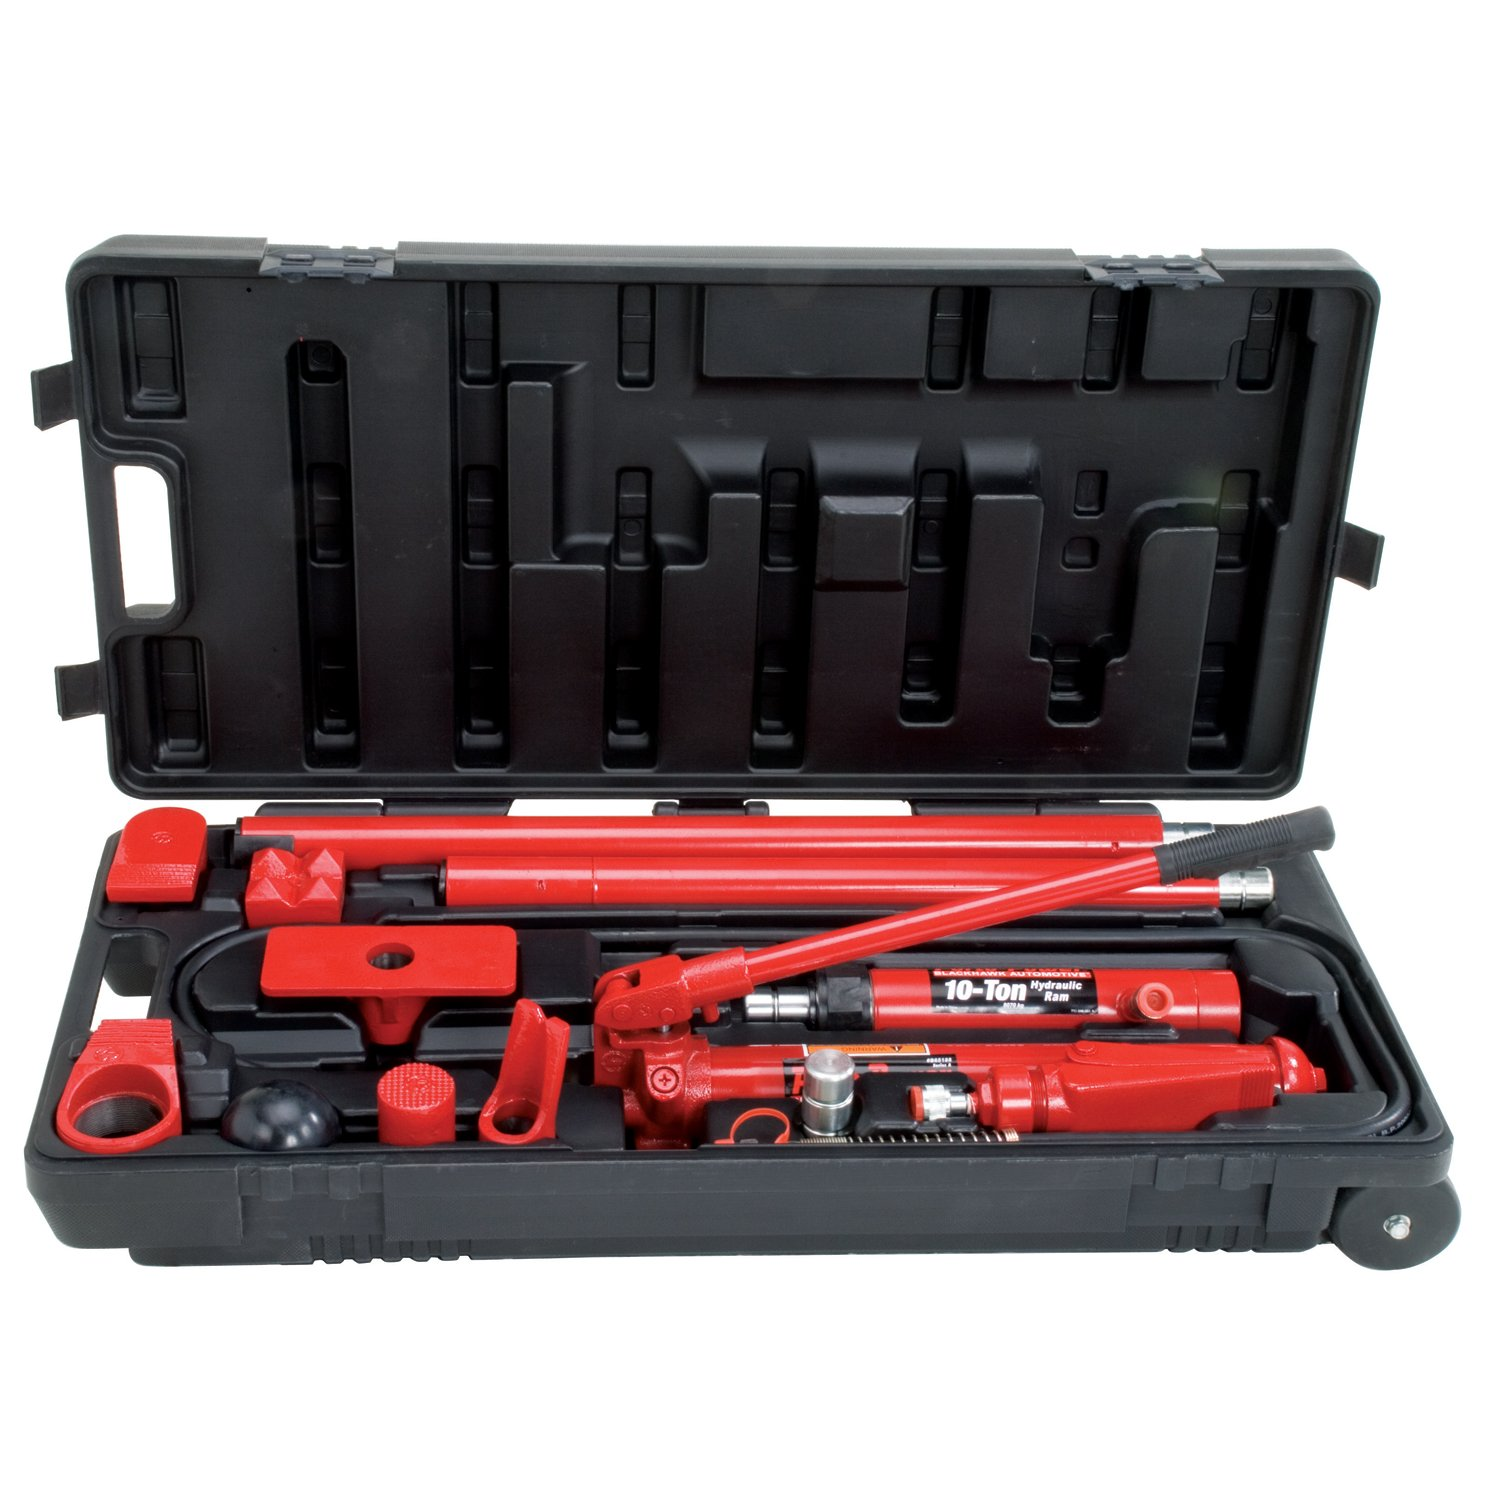 Porto-Power B65115 Black/Red Hydraulic Body Repair 19 Piece Kit - 10 Ton Capacity by Porto-Power (Image #3)